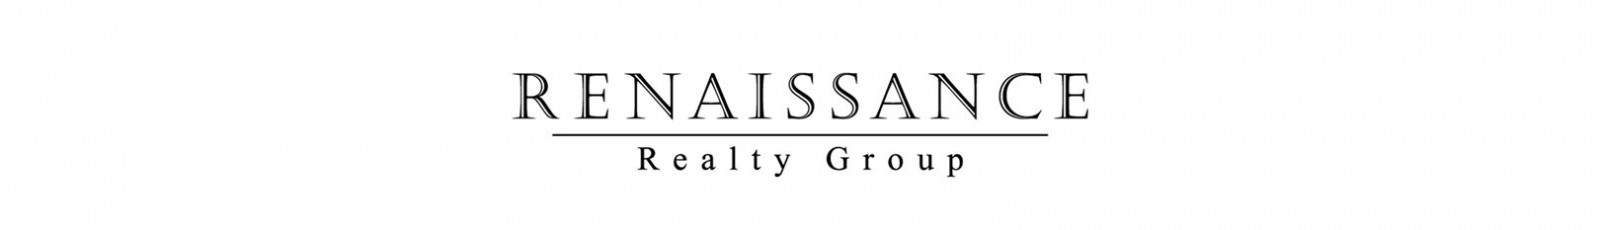 Renaissance Realty Group